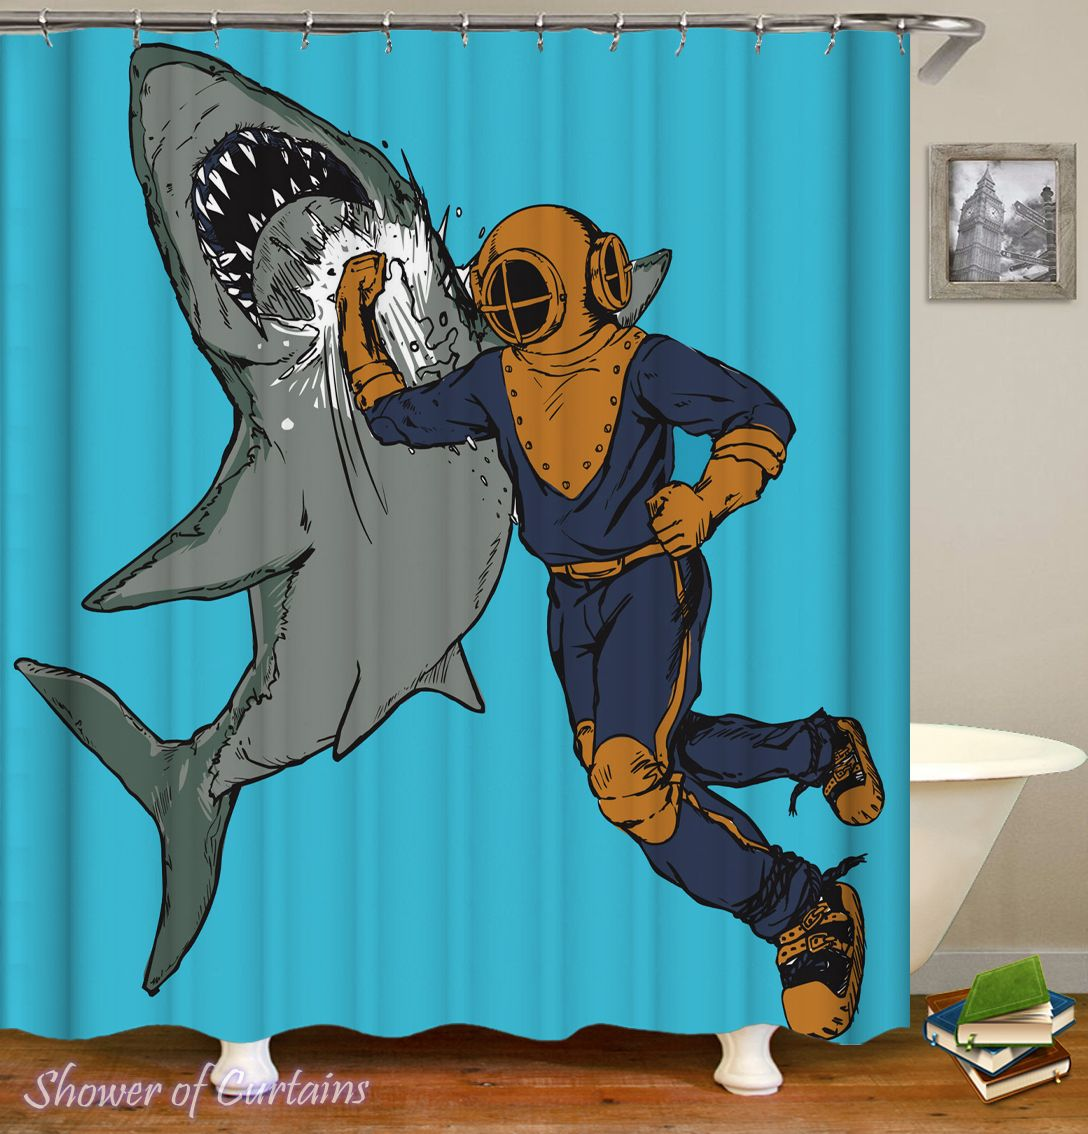 Scuba Diver Hitting A Shark Shower Curtain - HXTC0161